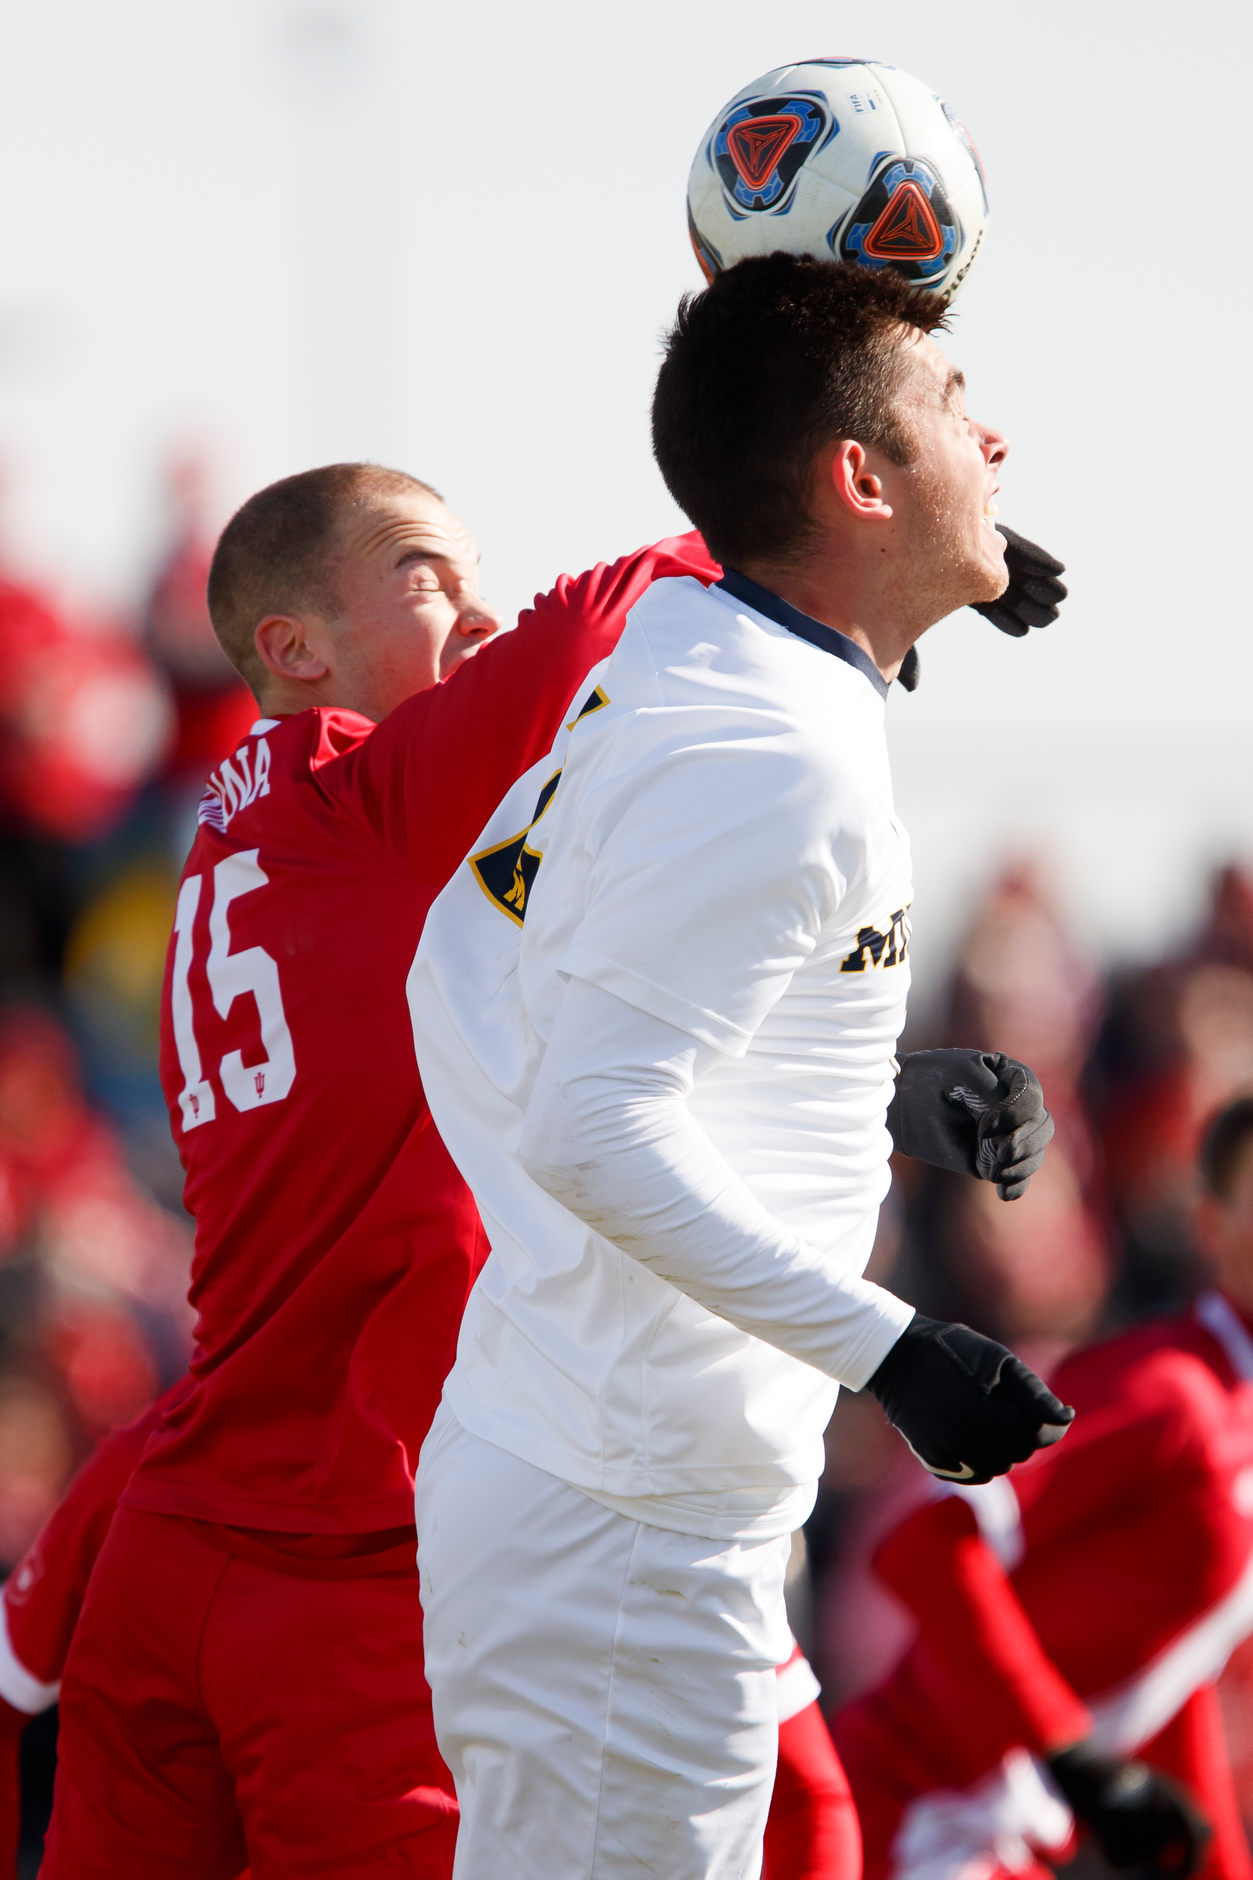 Michigan's Jackson Ragen (25) heads the ball in front of Indiana's Andrew Gutman (15) during the Big Ten Men's Soccer Tournament championship game at Grand Park in Westfield, Indiana on Sunday, Nov. 11, 2018. (Photo by James Brosher)